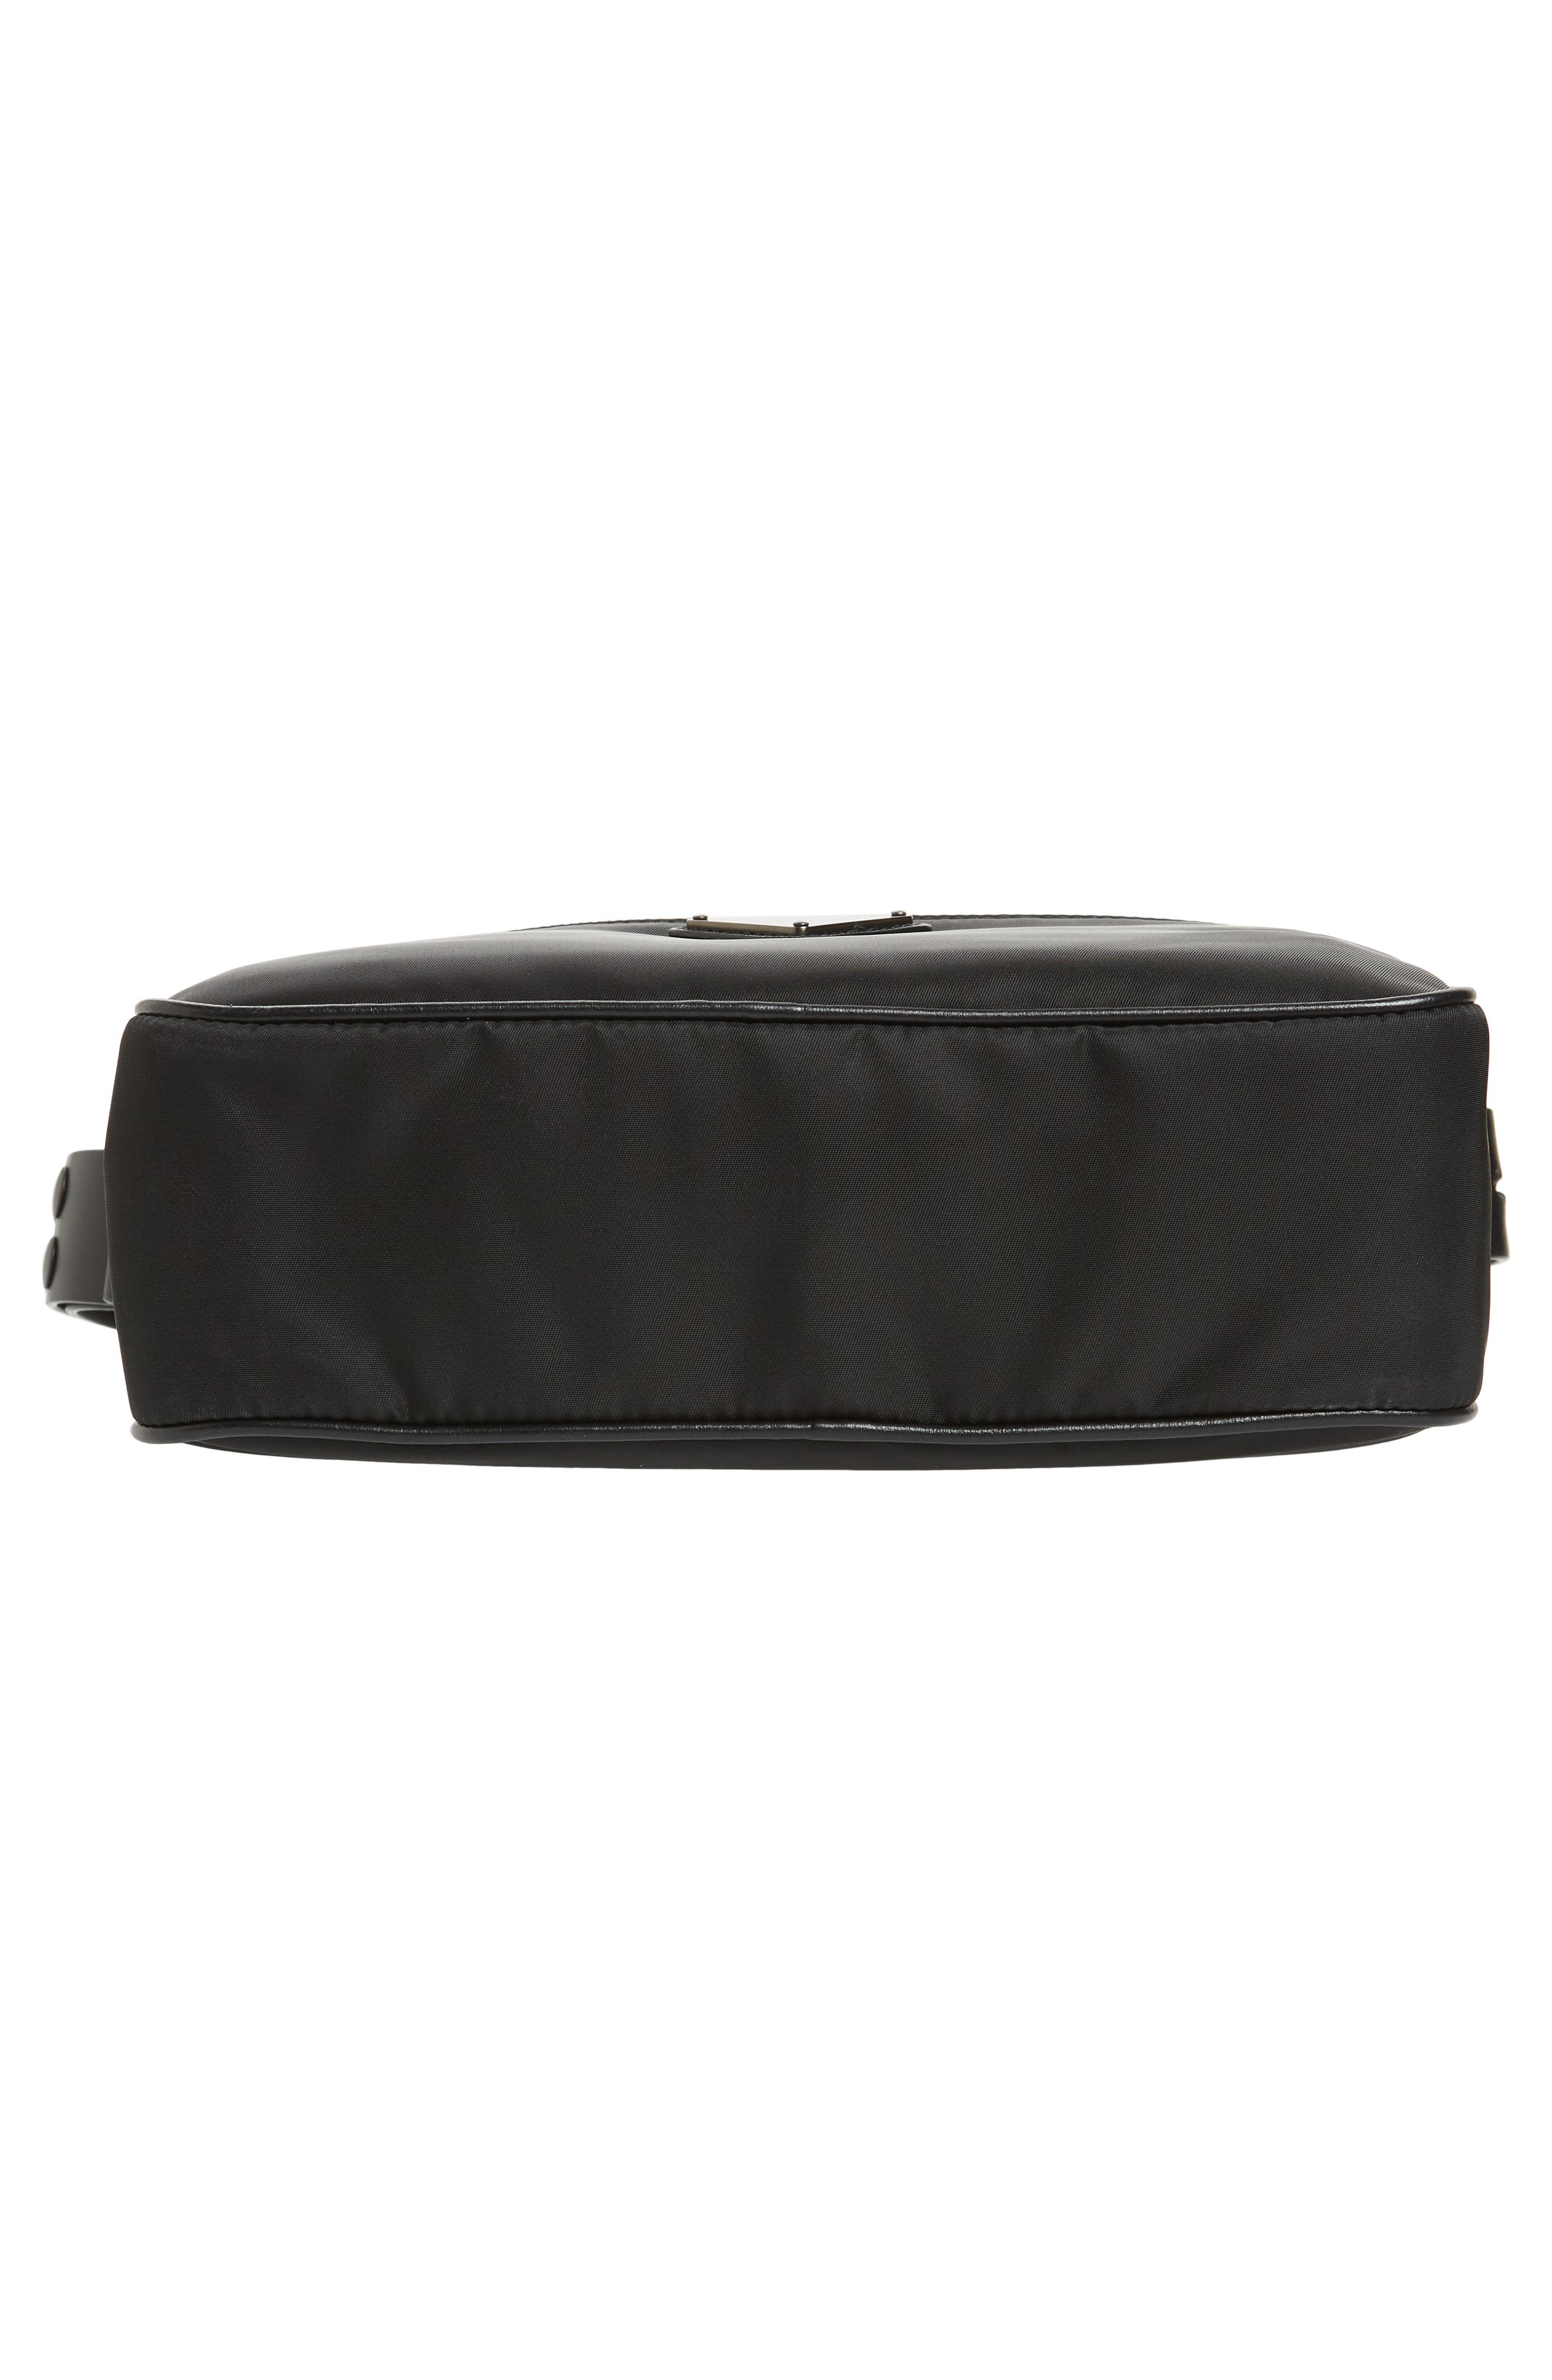 Small Nylon Camera Bag,                             Alternate thumbnail 6, color,                             F0632 NERO 1